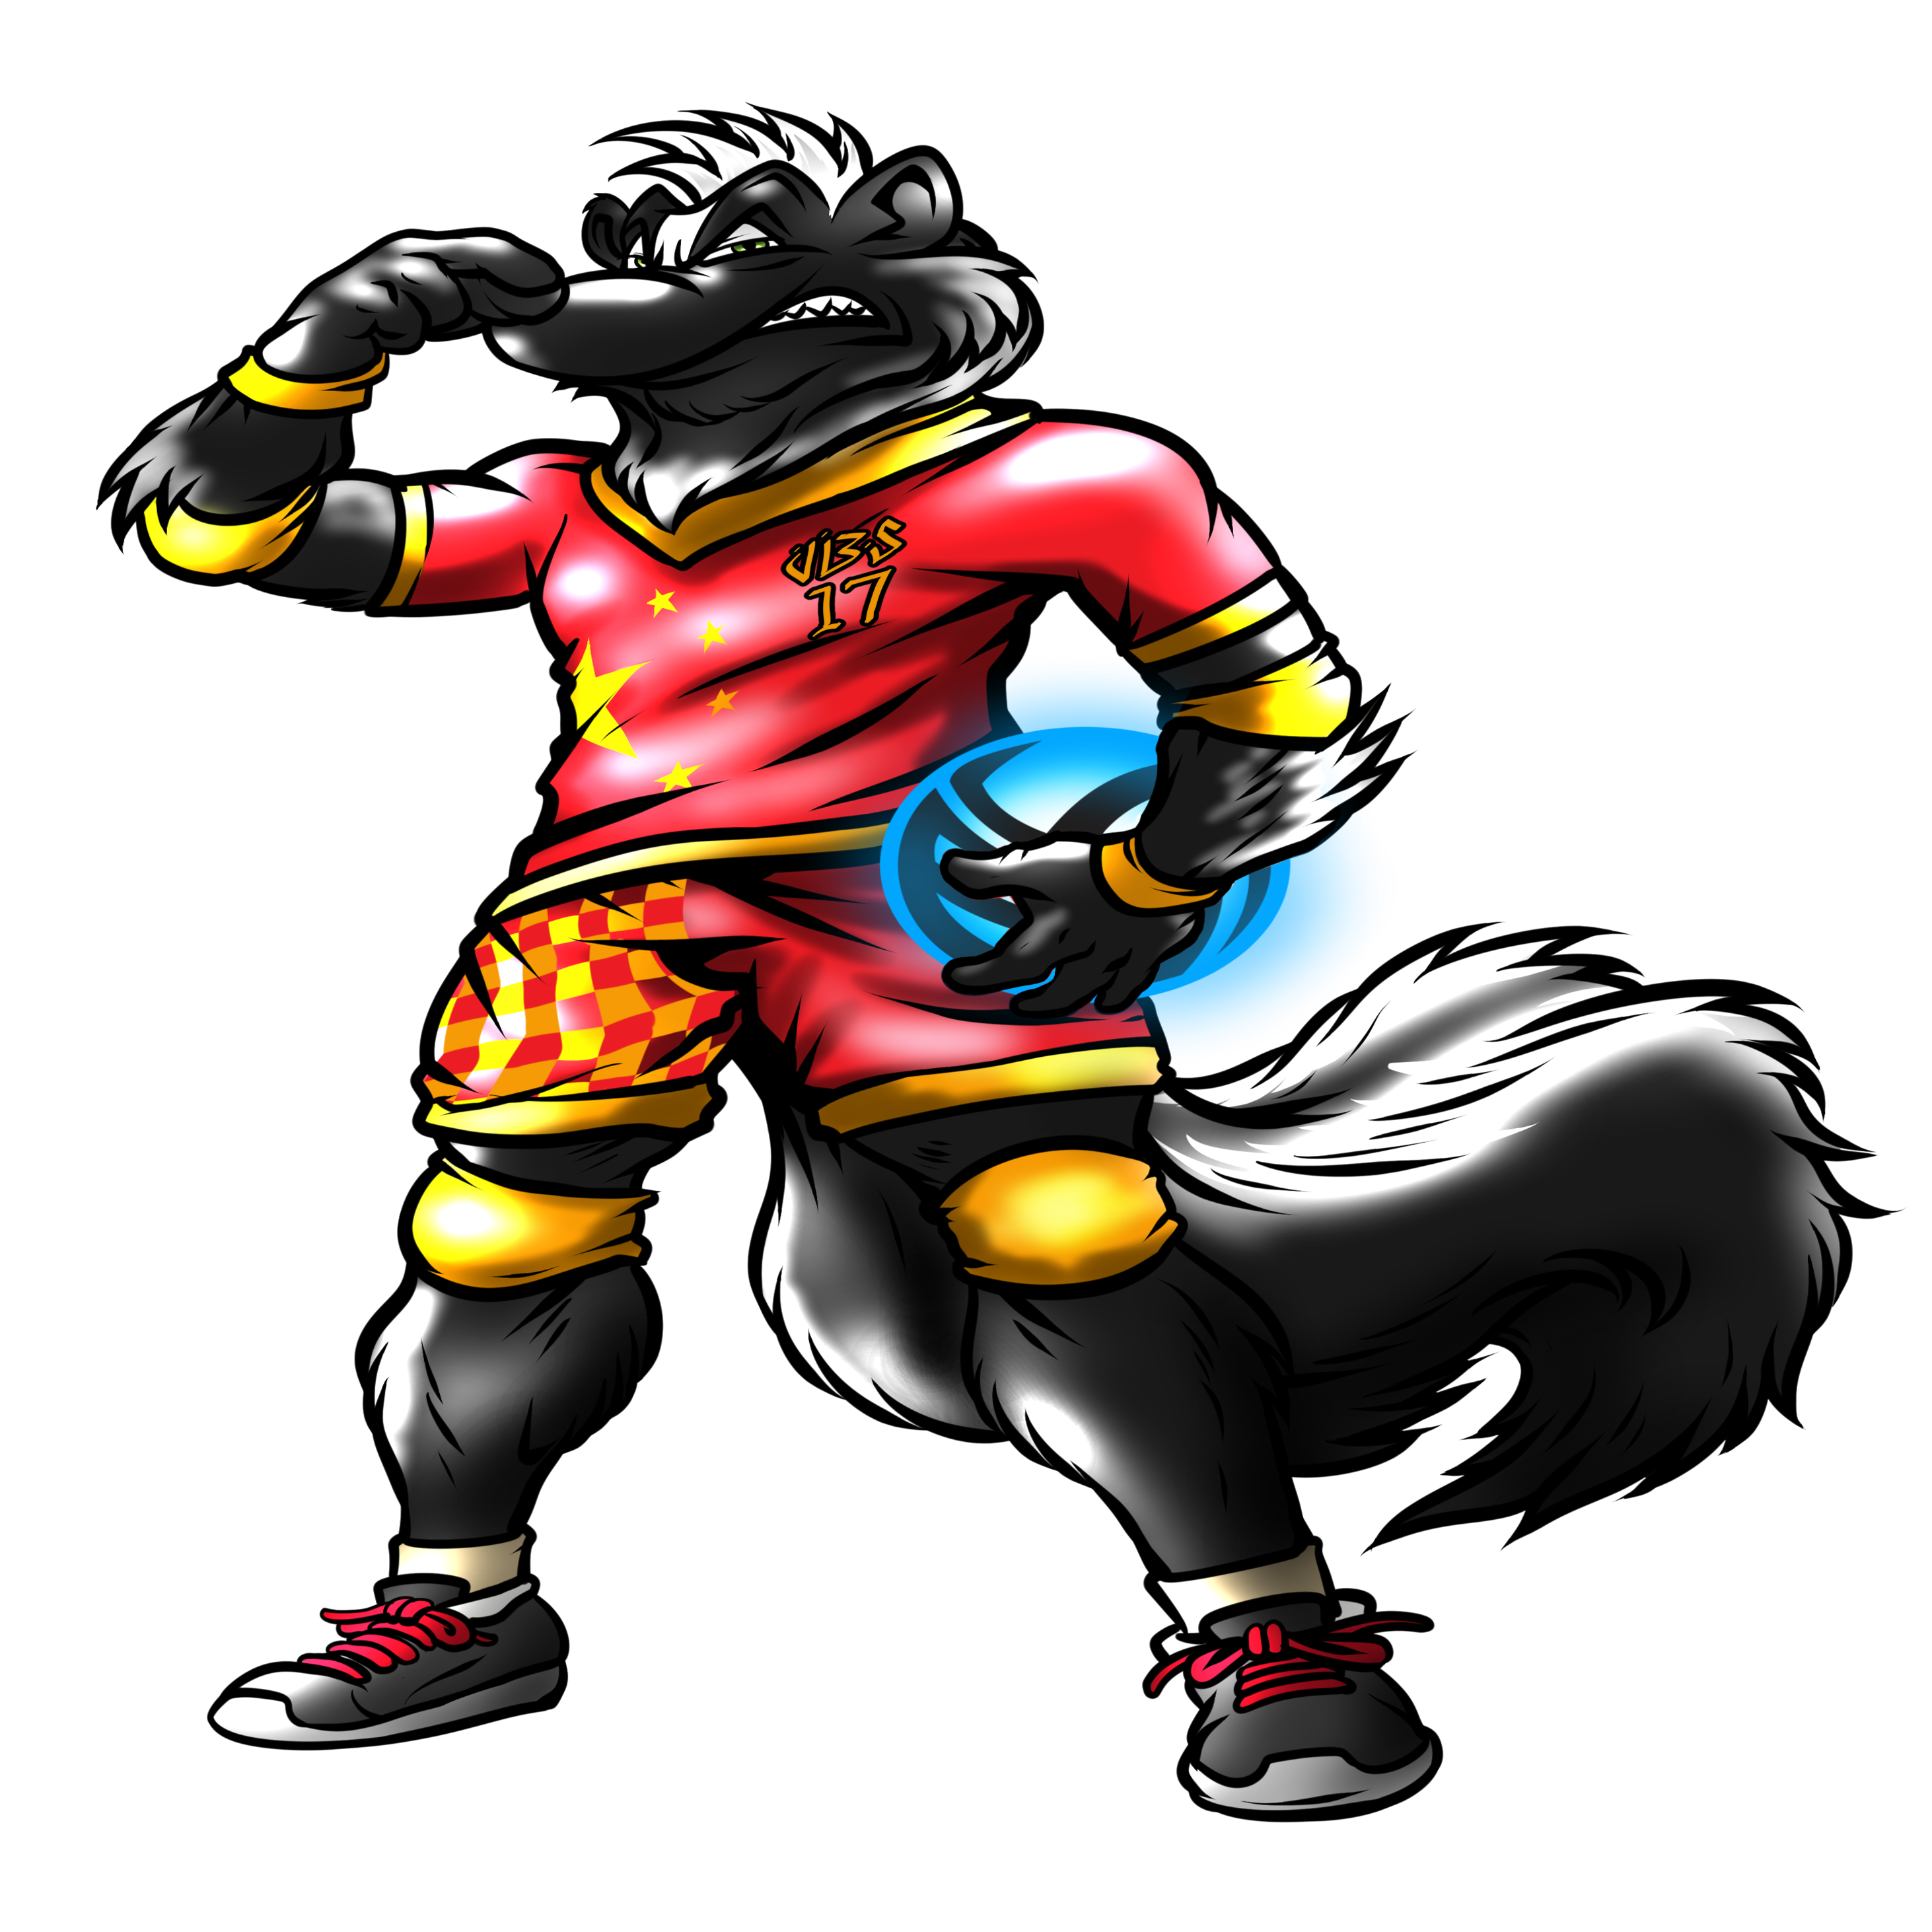 Skunk shirts by Volleybragswag have Cool Animal T Shirt Designs featuring Stank the Volleybragswag Skunk - Defensive Specialist. Stank wears a China flag inspired uniform.